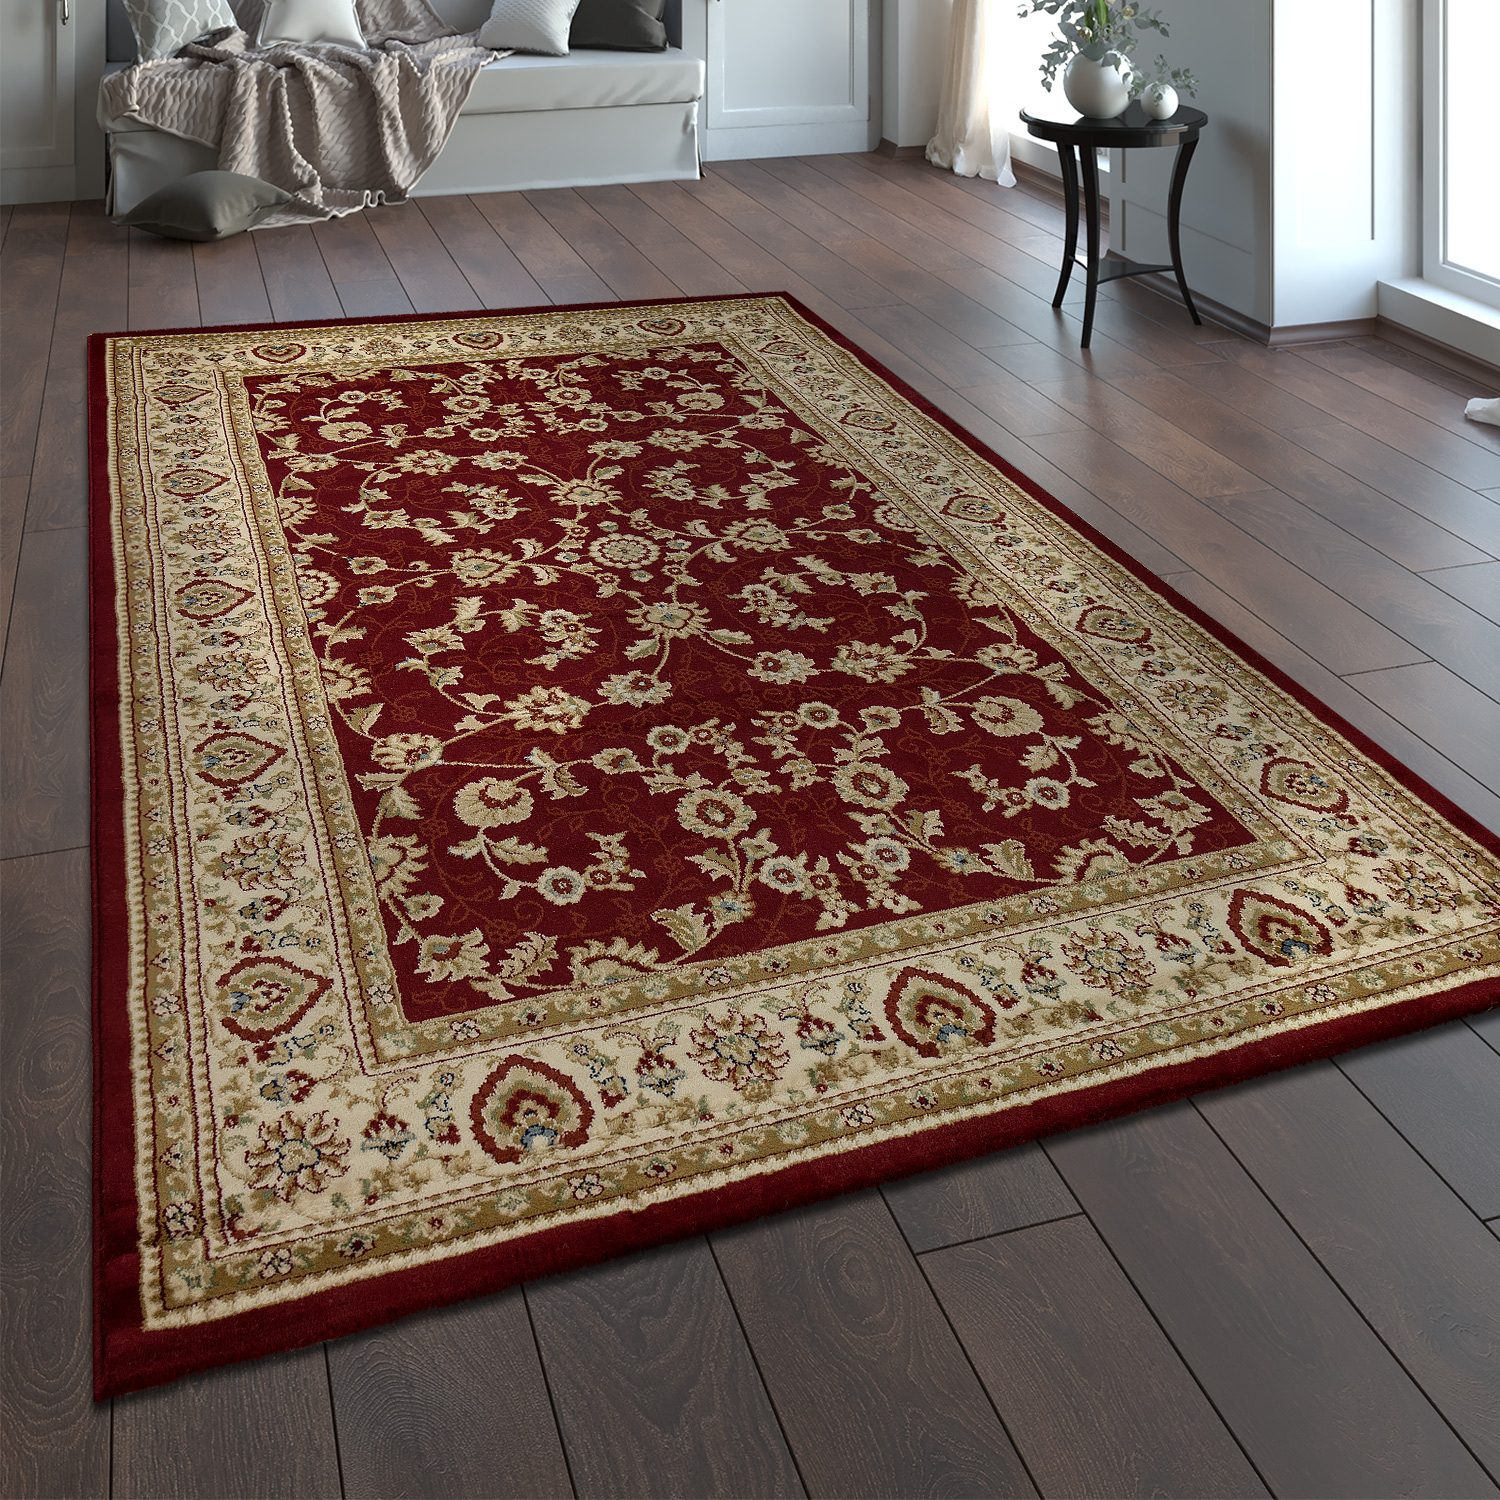 Oriental Rug Traditional Classic Look Persian Ornaments Floral Red Beige Cream